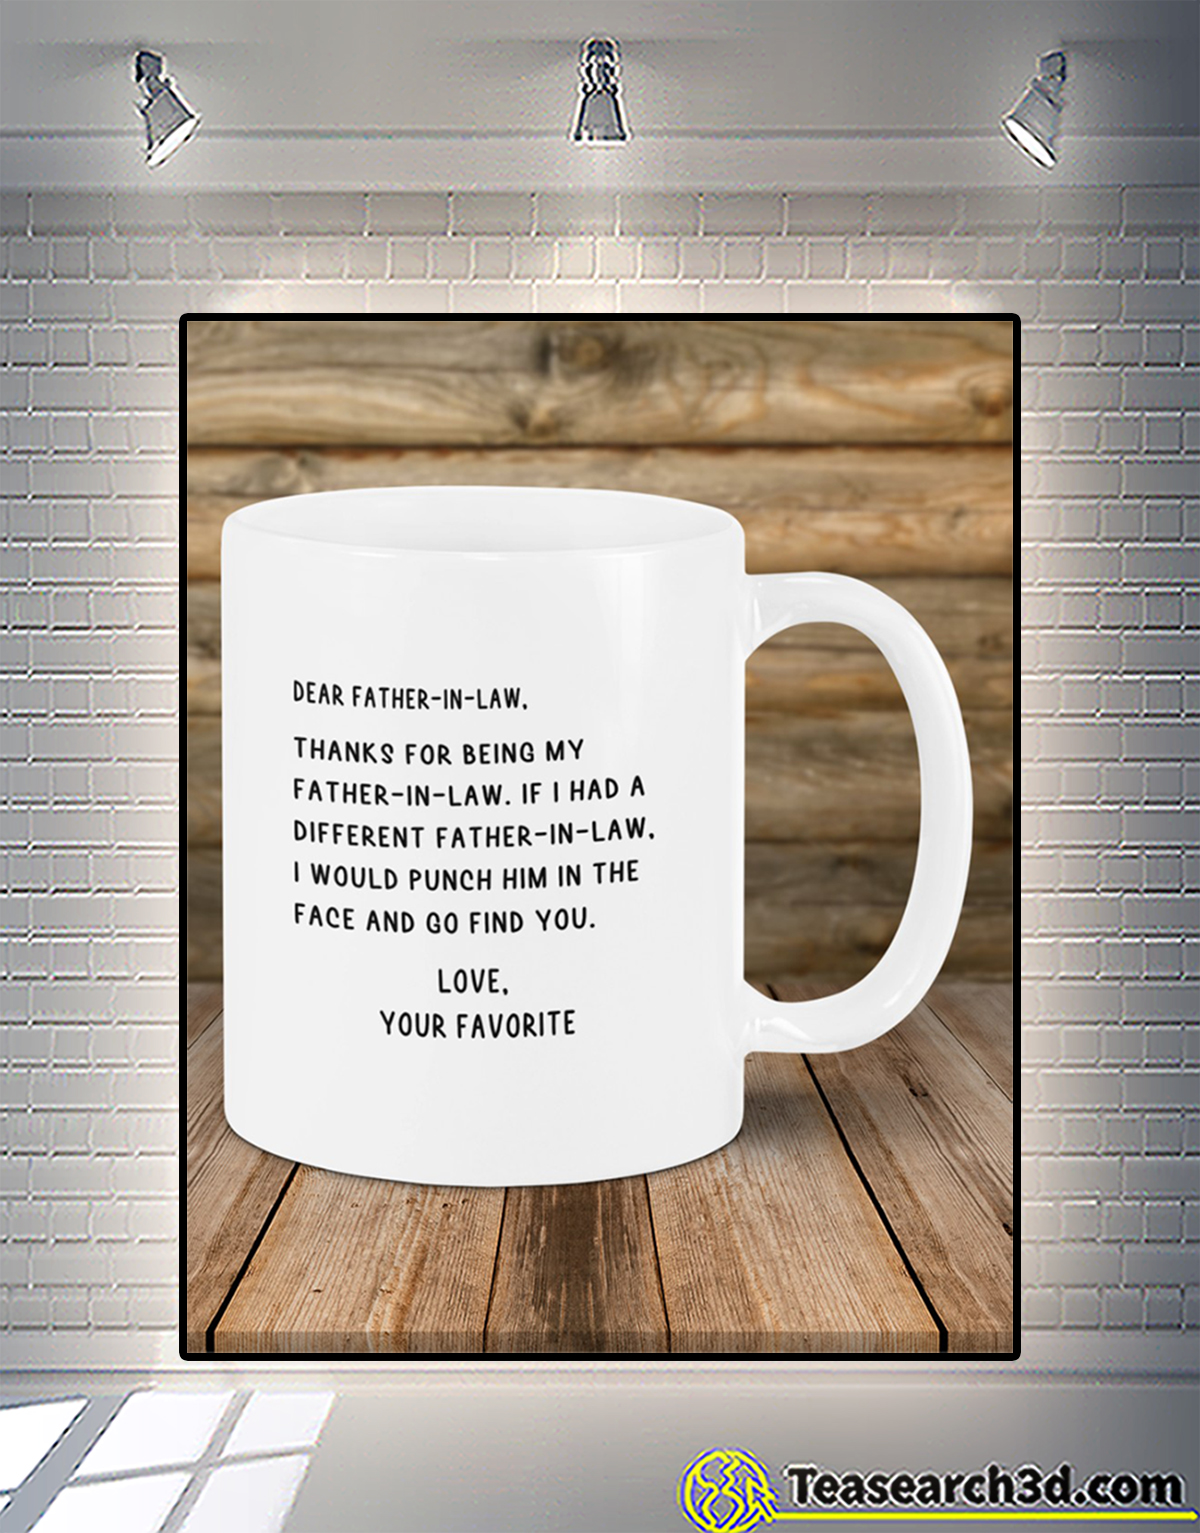 Dear father-in-law love your favorite mug 2